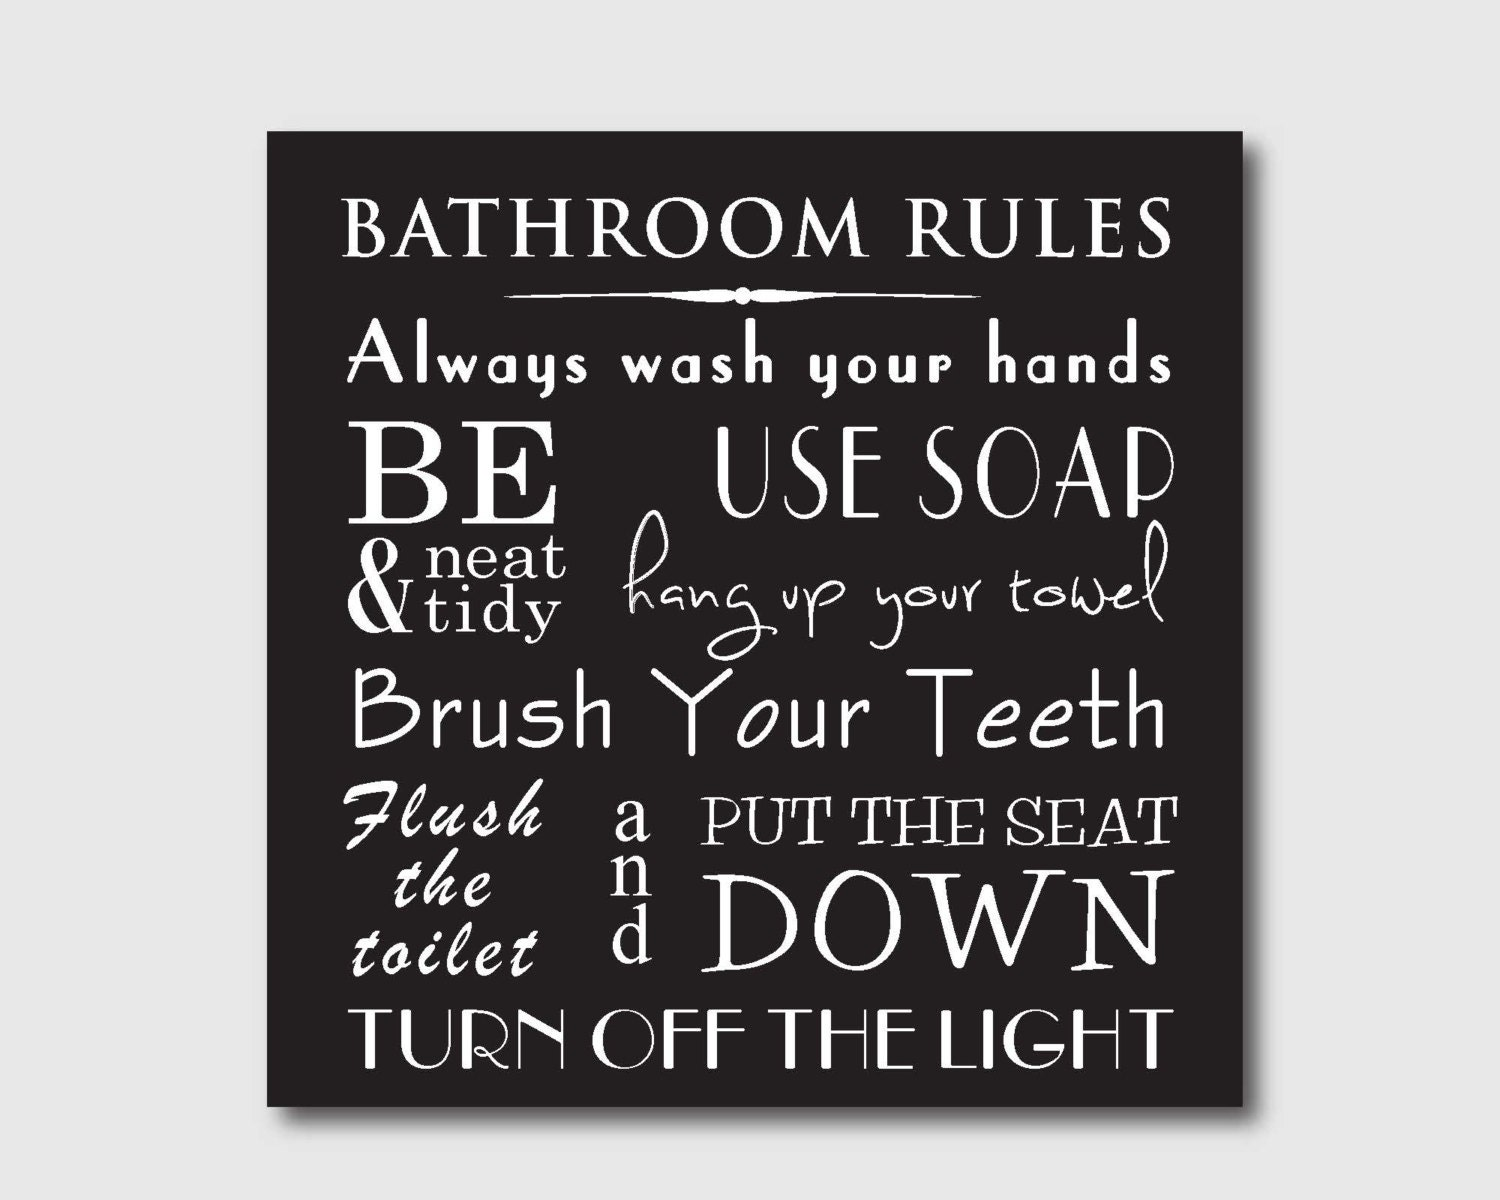 Bathroom Rules Wall Decor : Typography art print bathroom wall rules